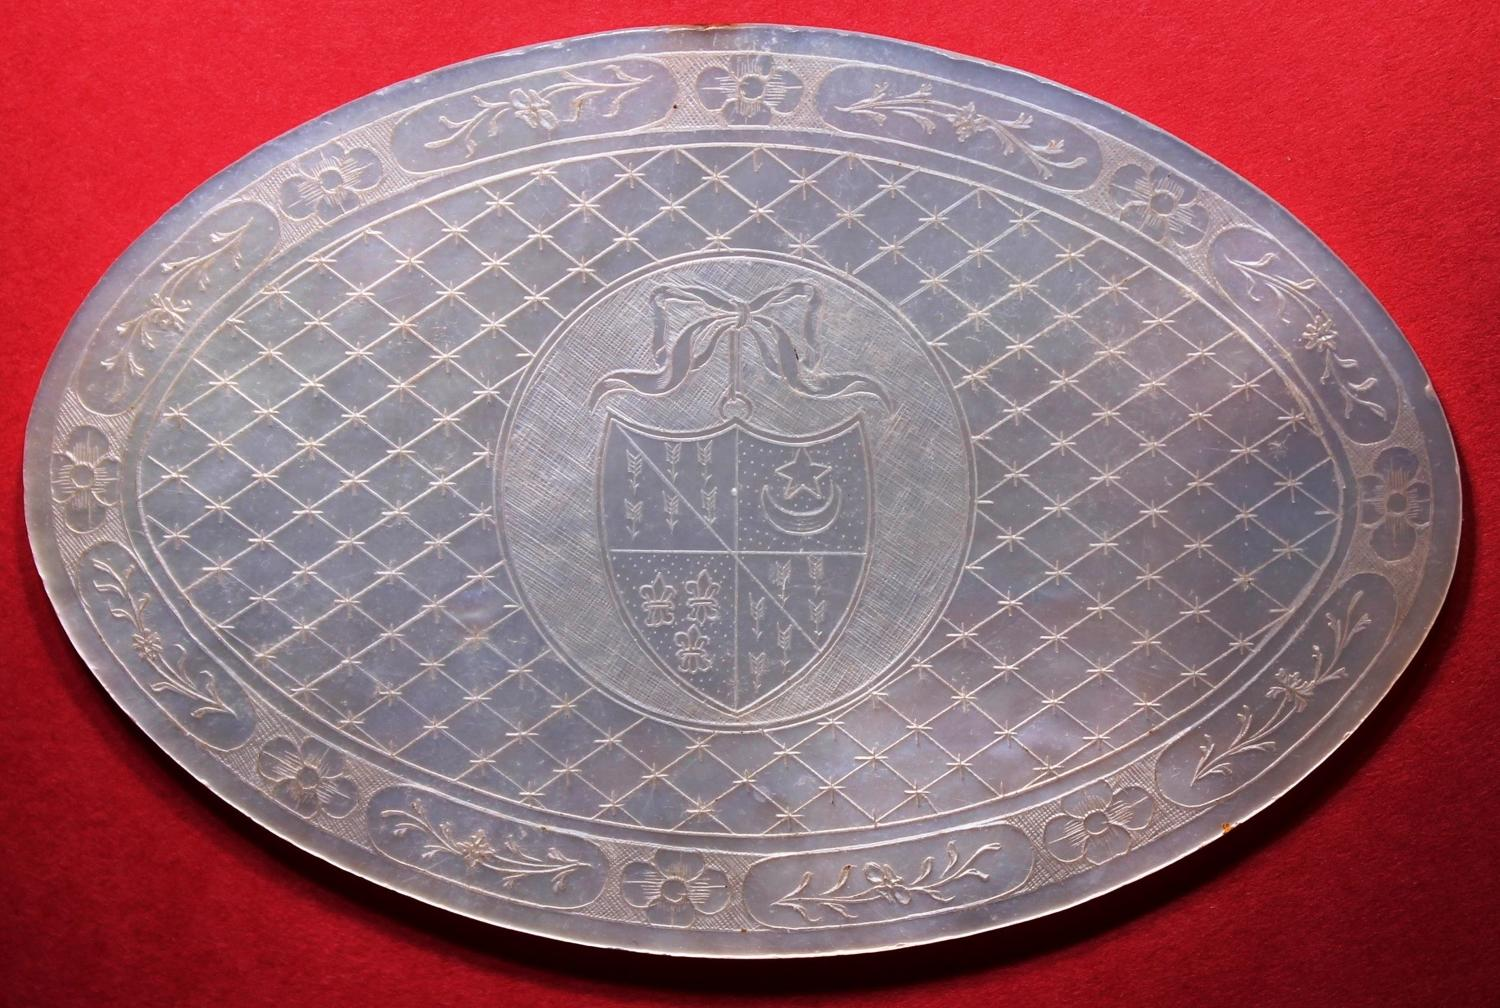 FLOYER - rare large oval